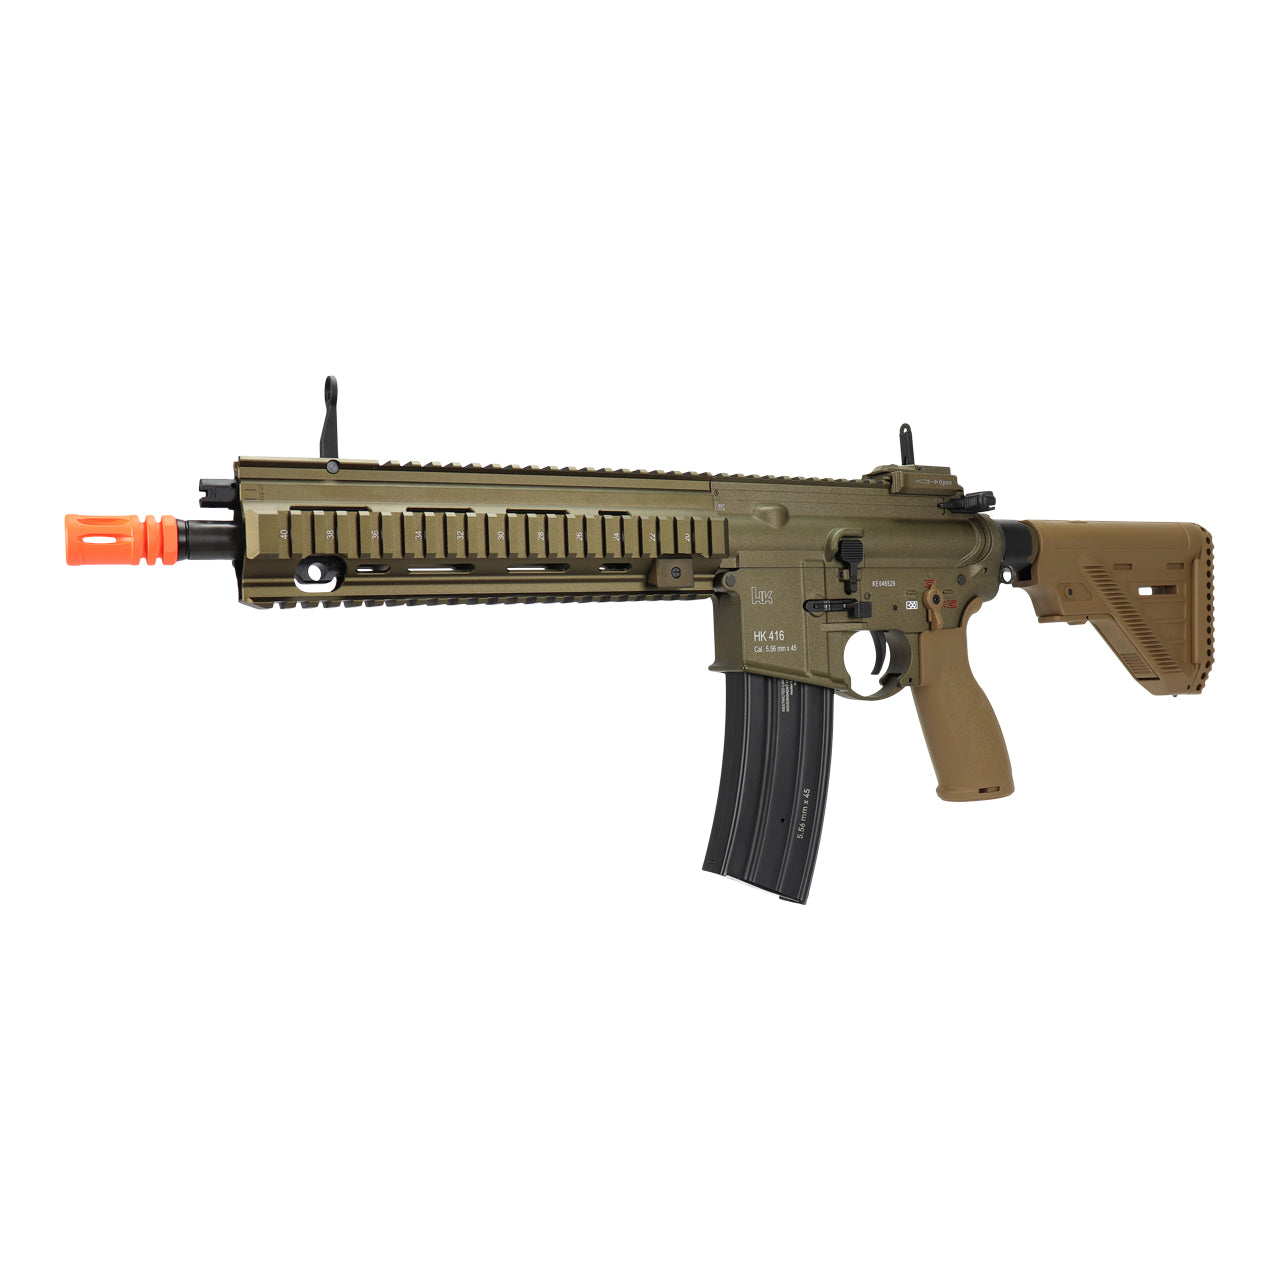 Umarex VFC Licensed H&K 416 A5 AEG w/ Avalon Gearbox (Color: Tan)